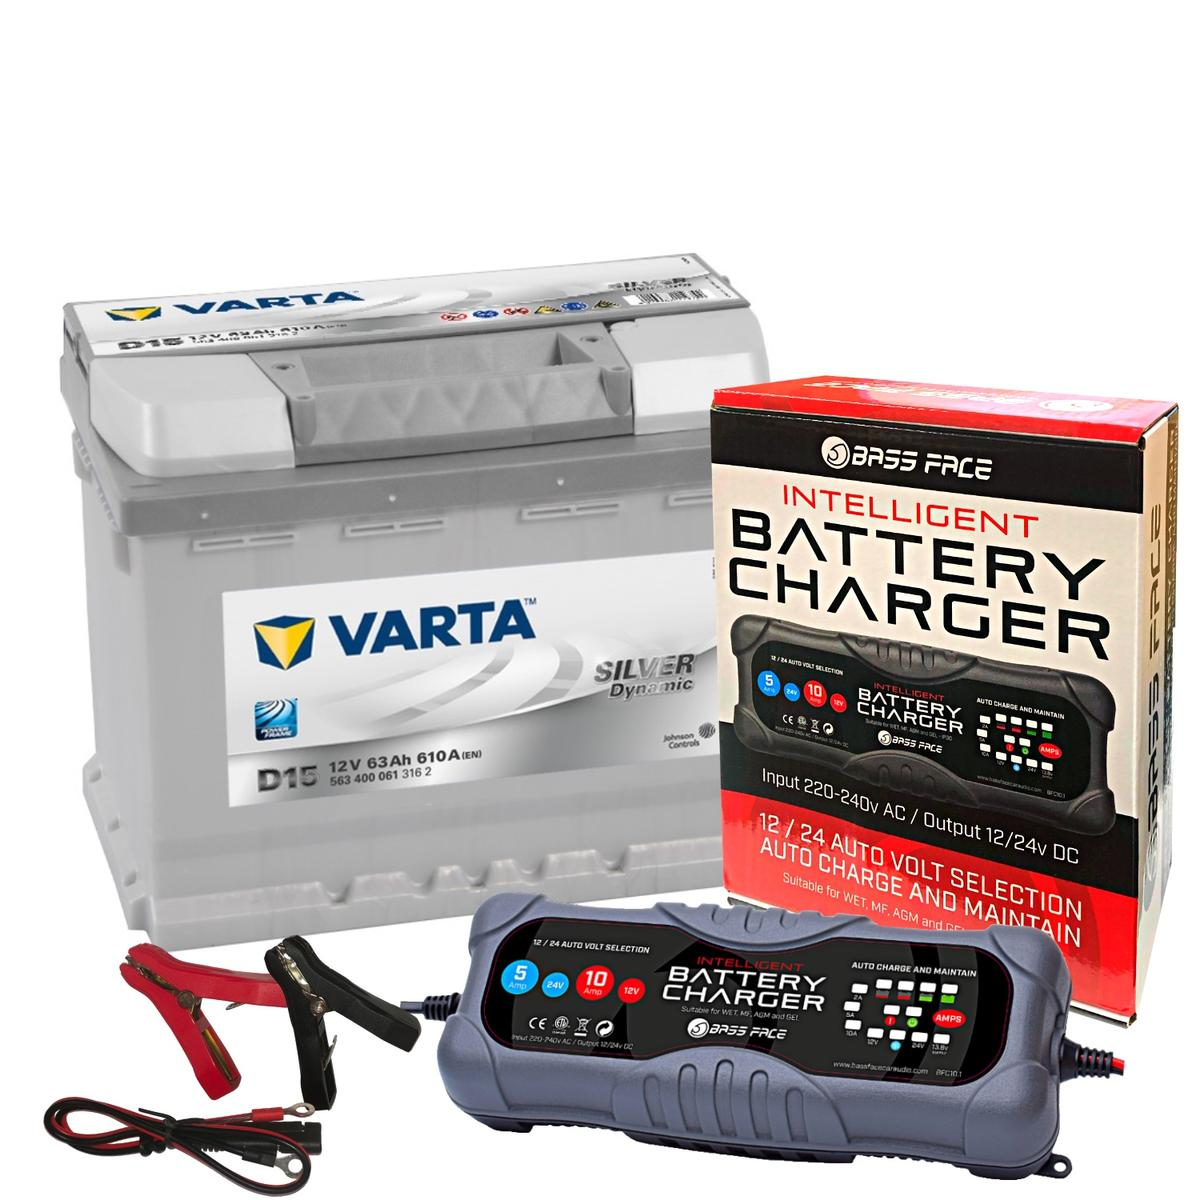 Varta D15 BMW VW Volvo Car Battery 12v 5 Year 027 63Ah 610CCA W/ 10 Amp Charger